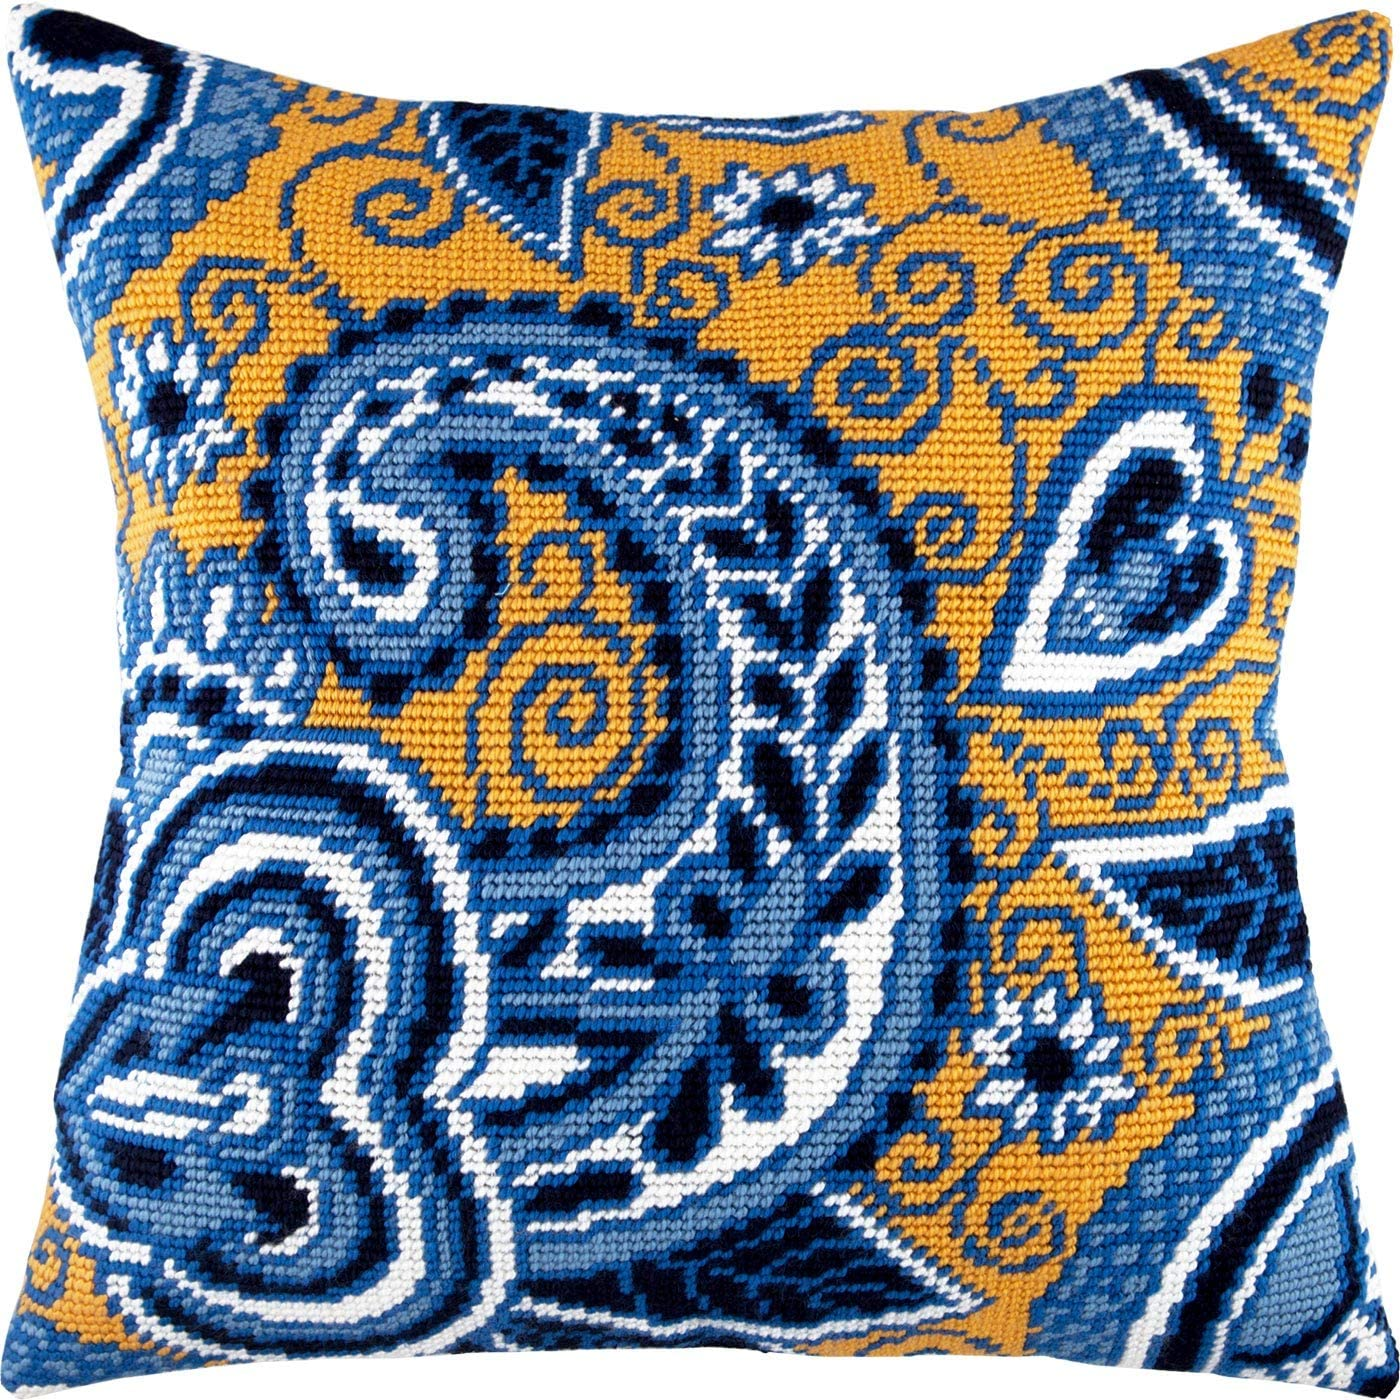 Azure and Gold. Needlepoint Kit. P 16×16 Throw Pillow Inches. Luxury Max 63% OFF